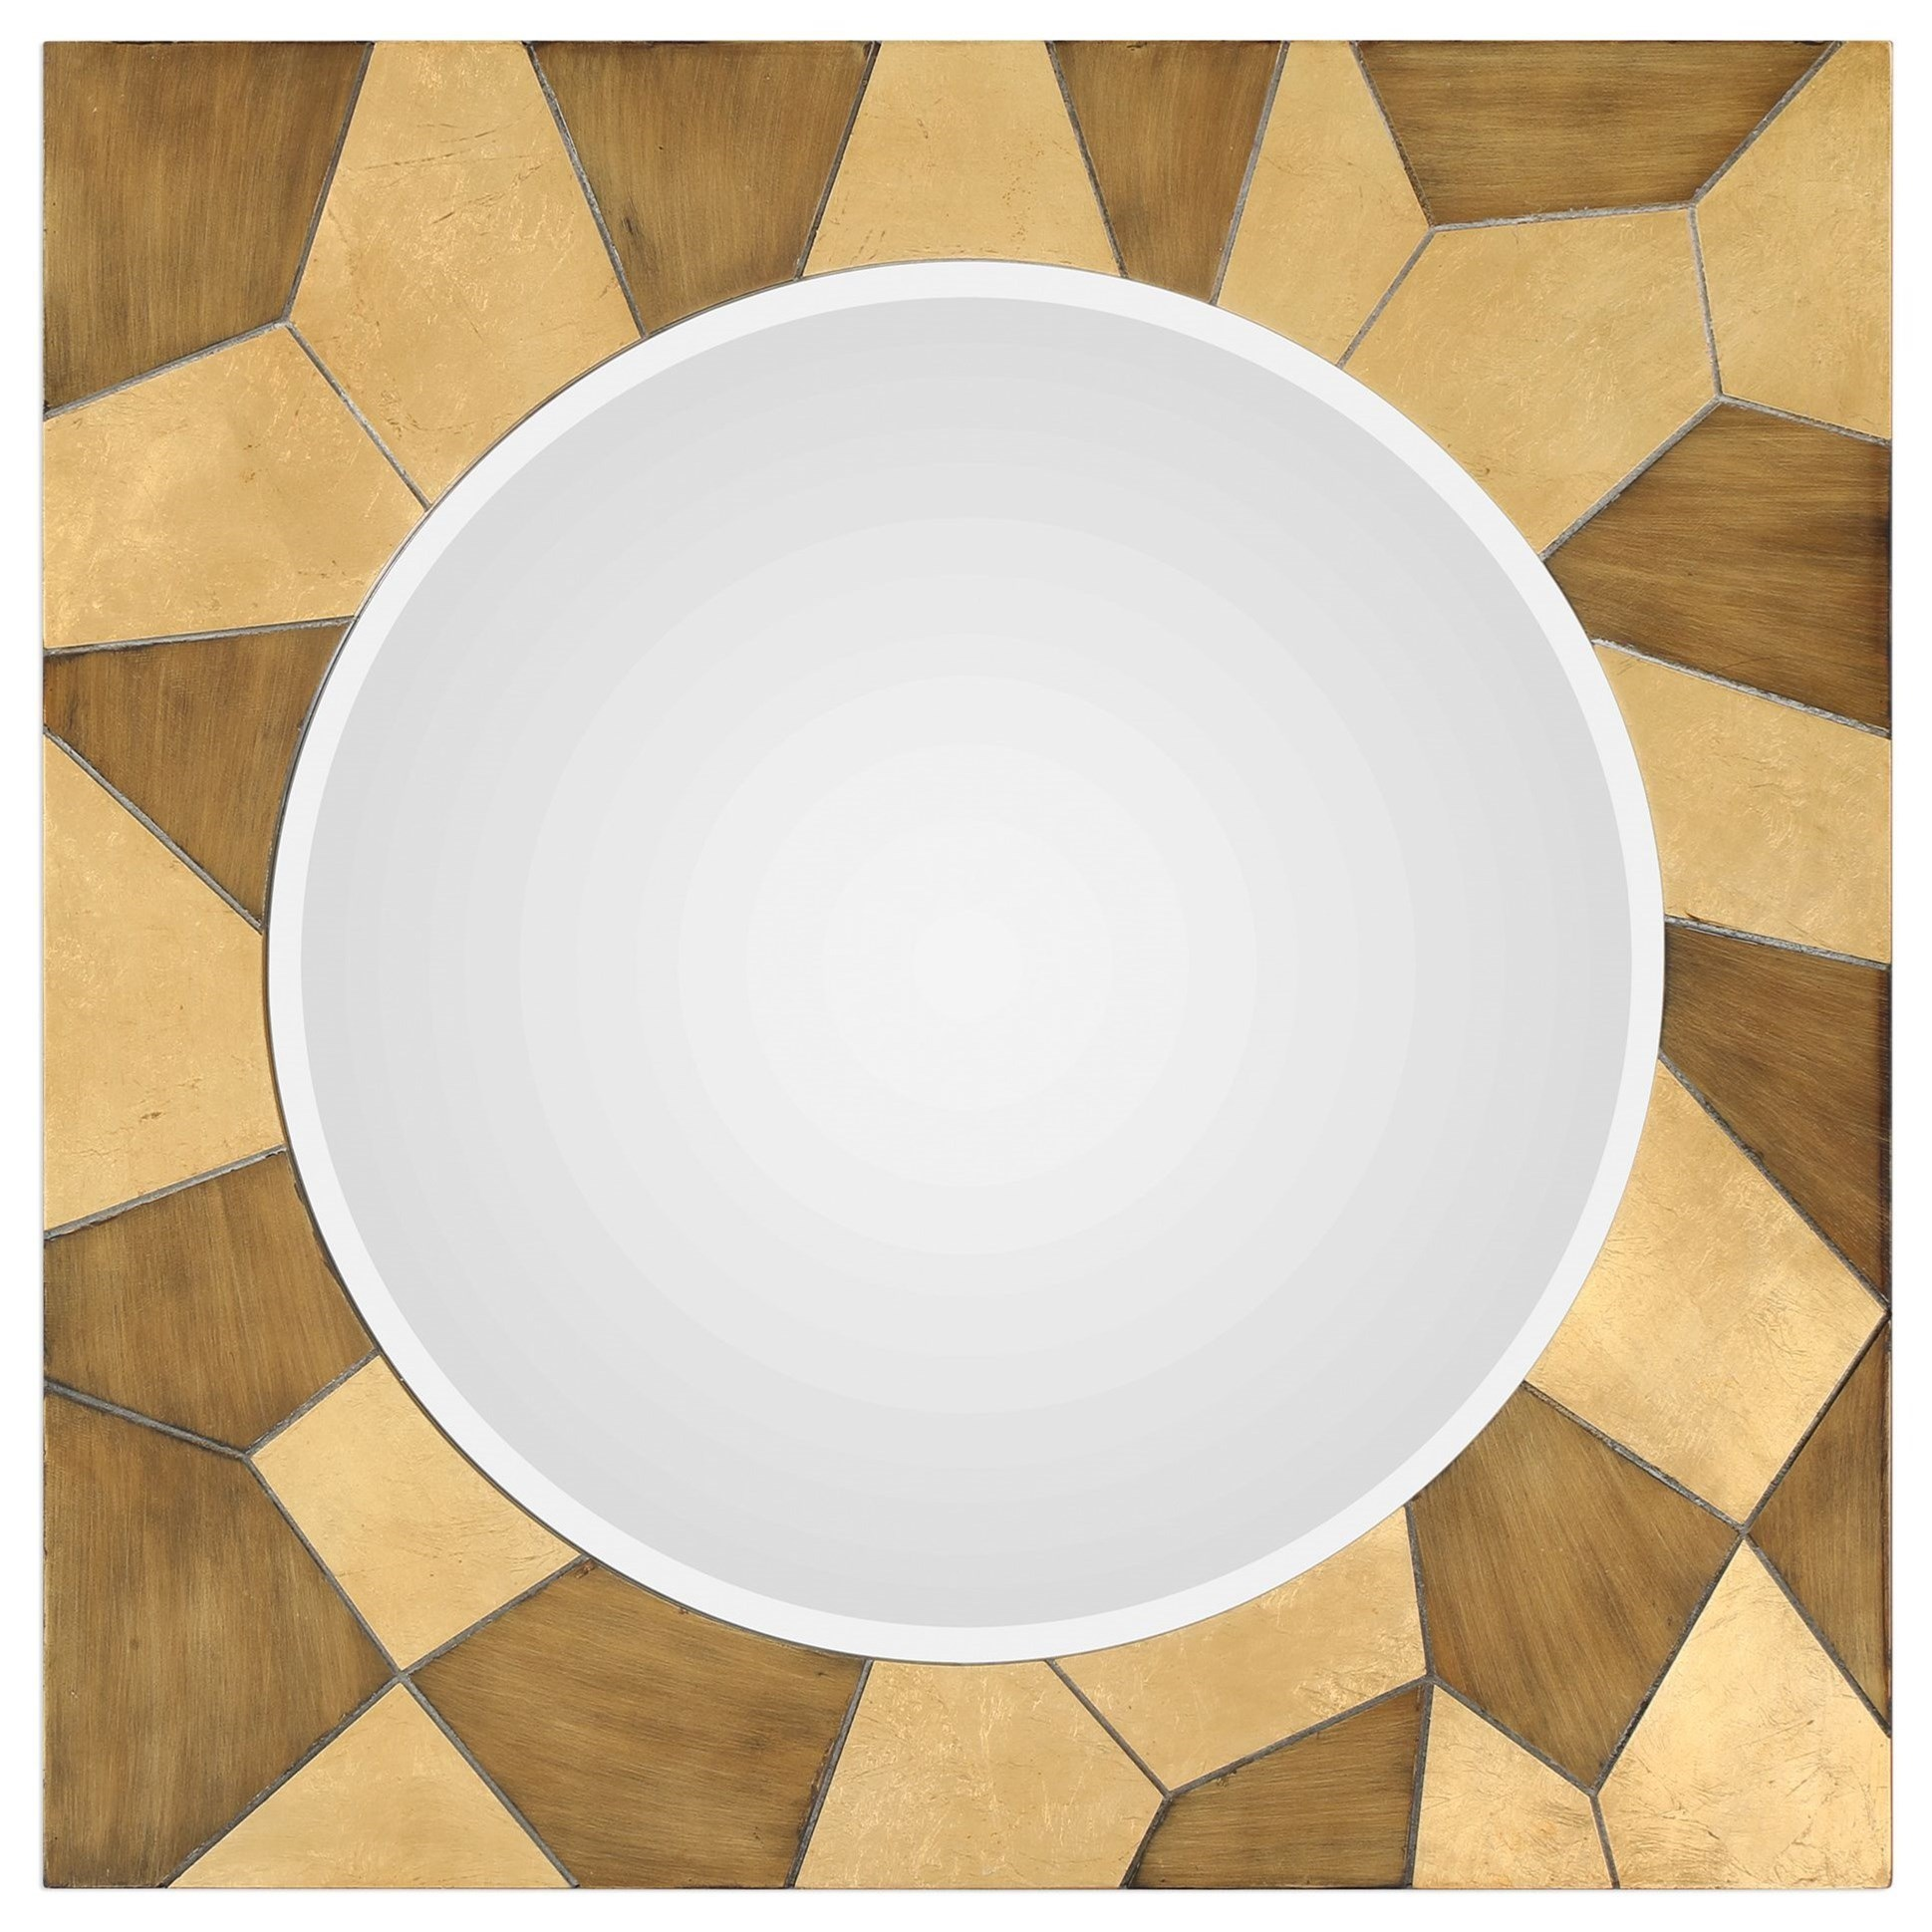 Ussana Patterned Wood Mirror